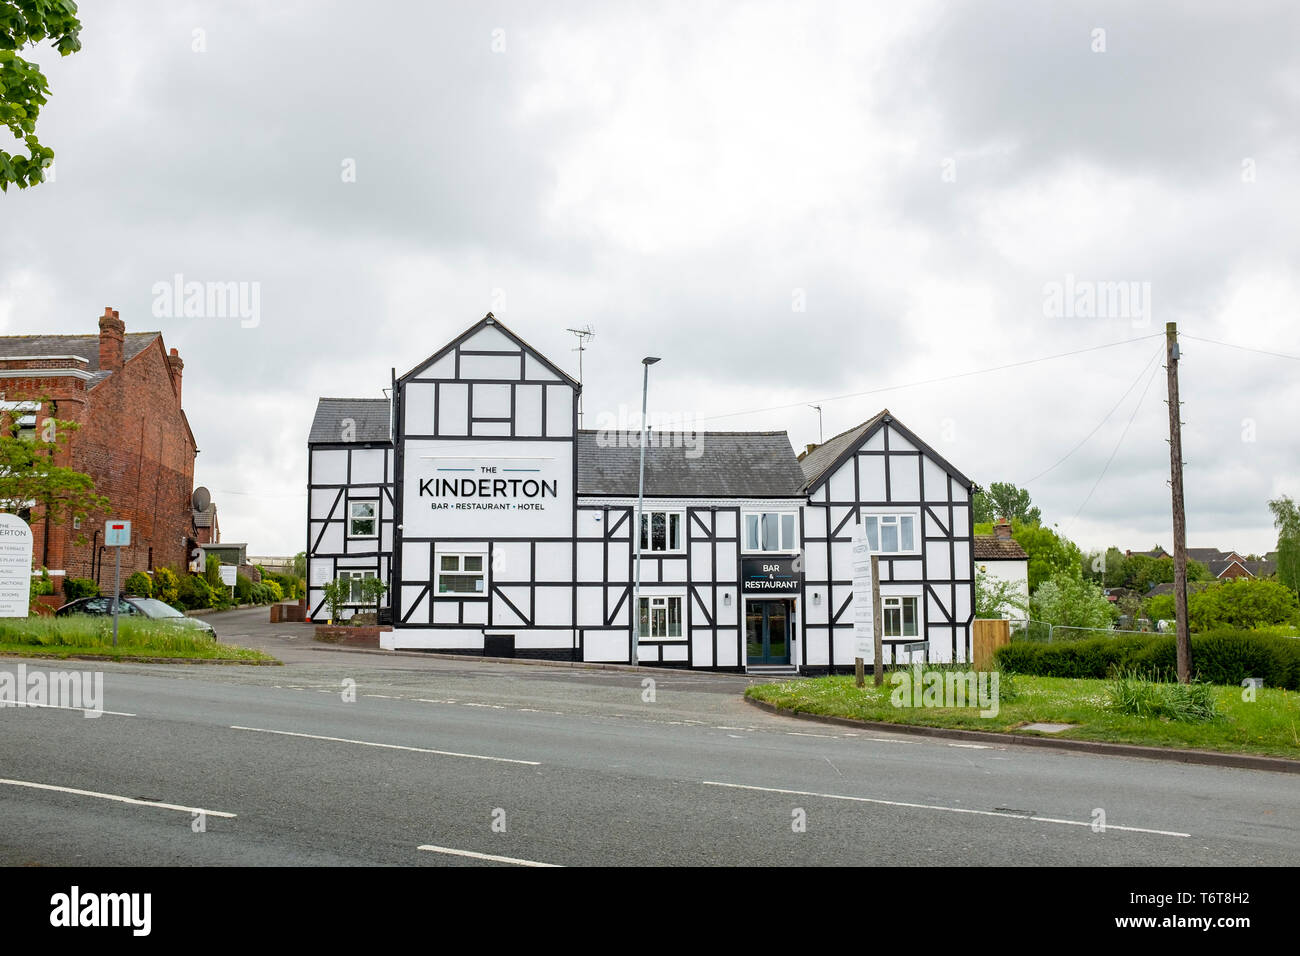 The Kinderton Hotel in Middlewich Cheshire UK - Stock Image